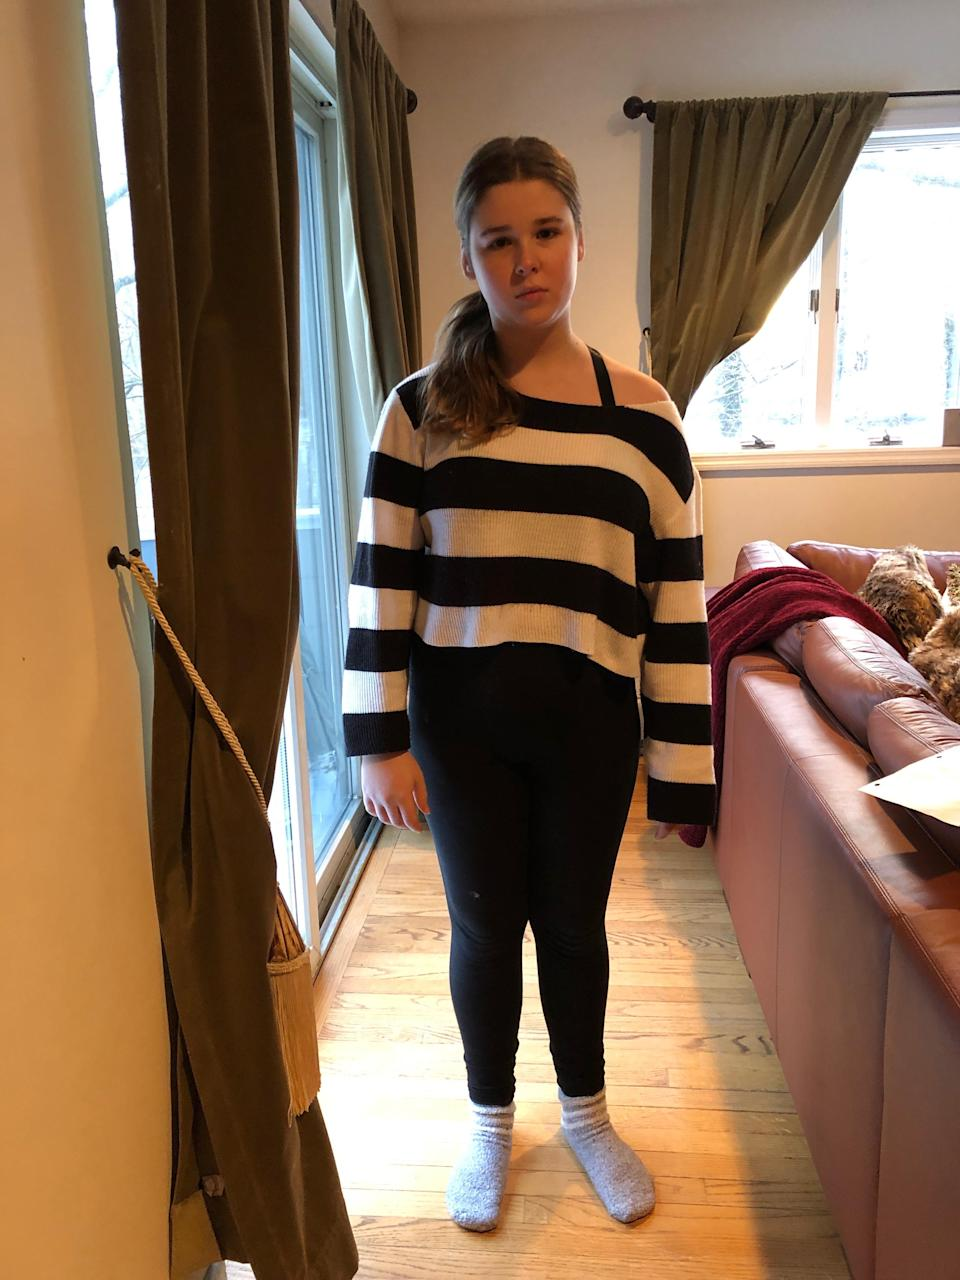 Samantha Wilson, an 8th-grade student at Irvington Middle School in N.Y. was dress-coded for her H&M sweater. Her family started a petition asking the school to reevaluate its rules. (Photo: Courtesy of Cydney Wilson)